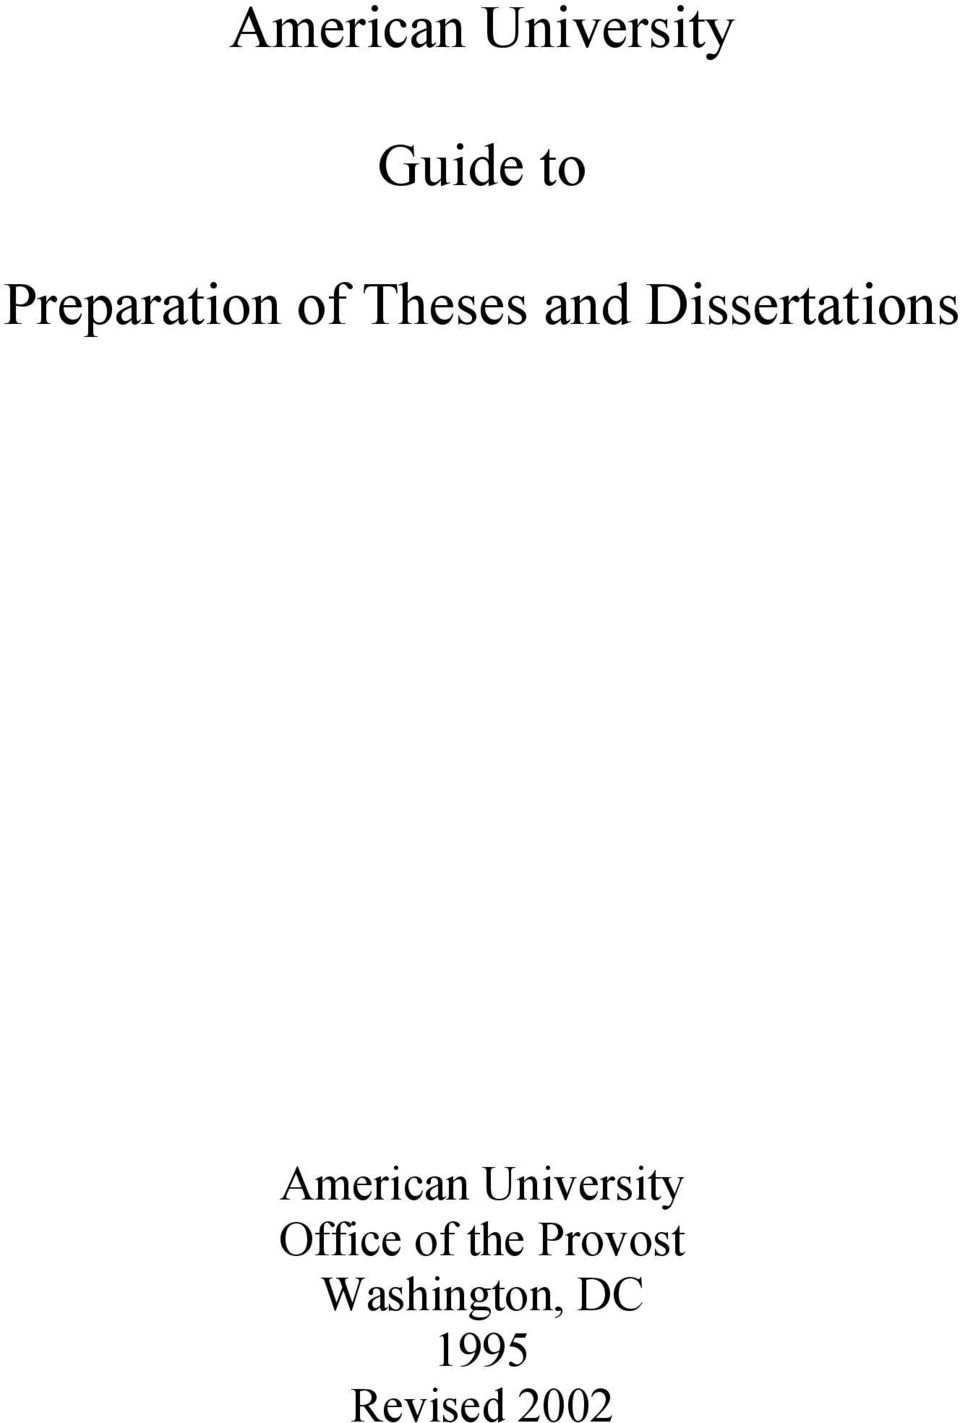 Preparation of archival copies of theses and dissertations